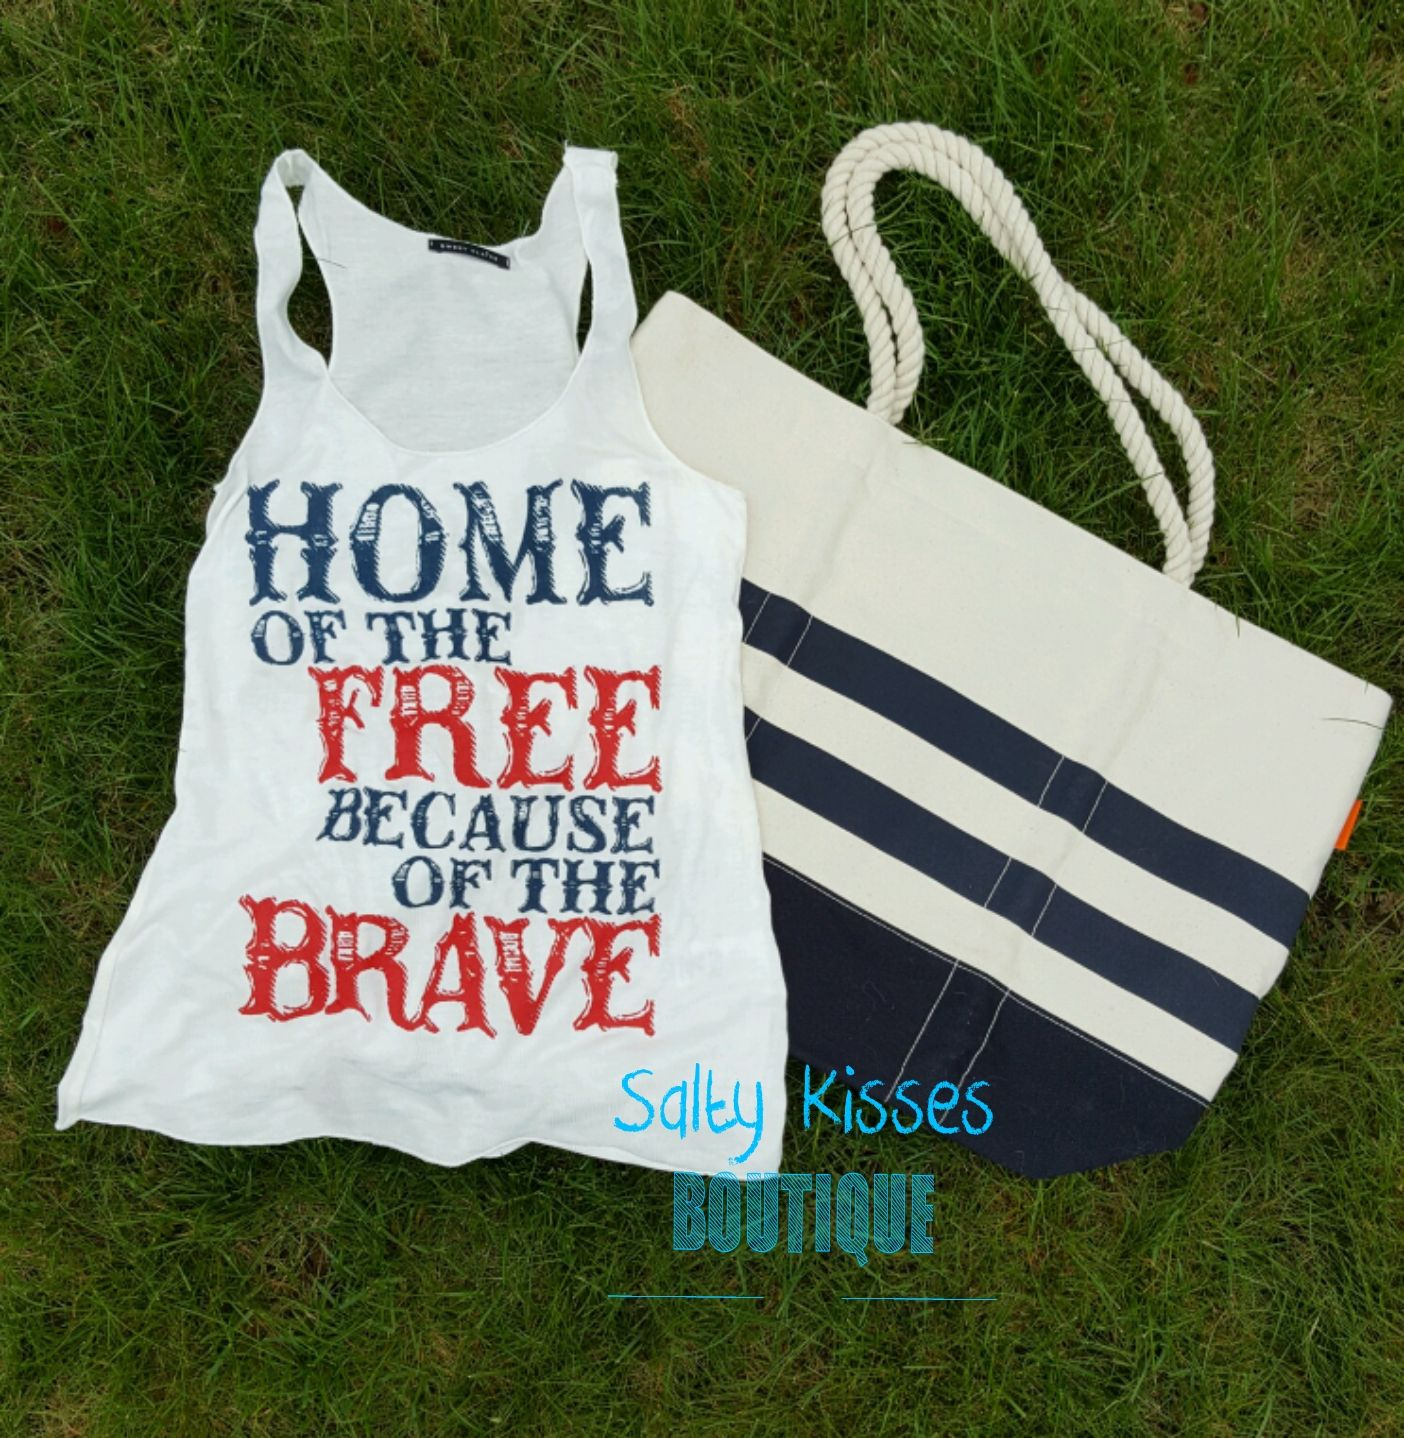 Get ready for Summer BBQ'S with our Home of the Free because of the Brave tank! Ultra soft with a  loose fit♡ | Shop this product here: spreesy.com/saltykissesboutique/26 | Shop all of our products at http://spreesy.com/saltykissesboutique    | Pinterest selling powered by Spreesy.com